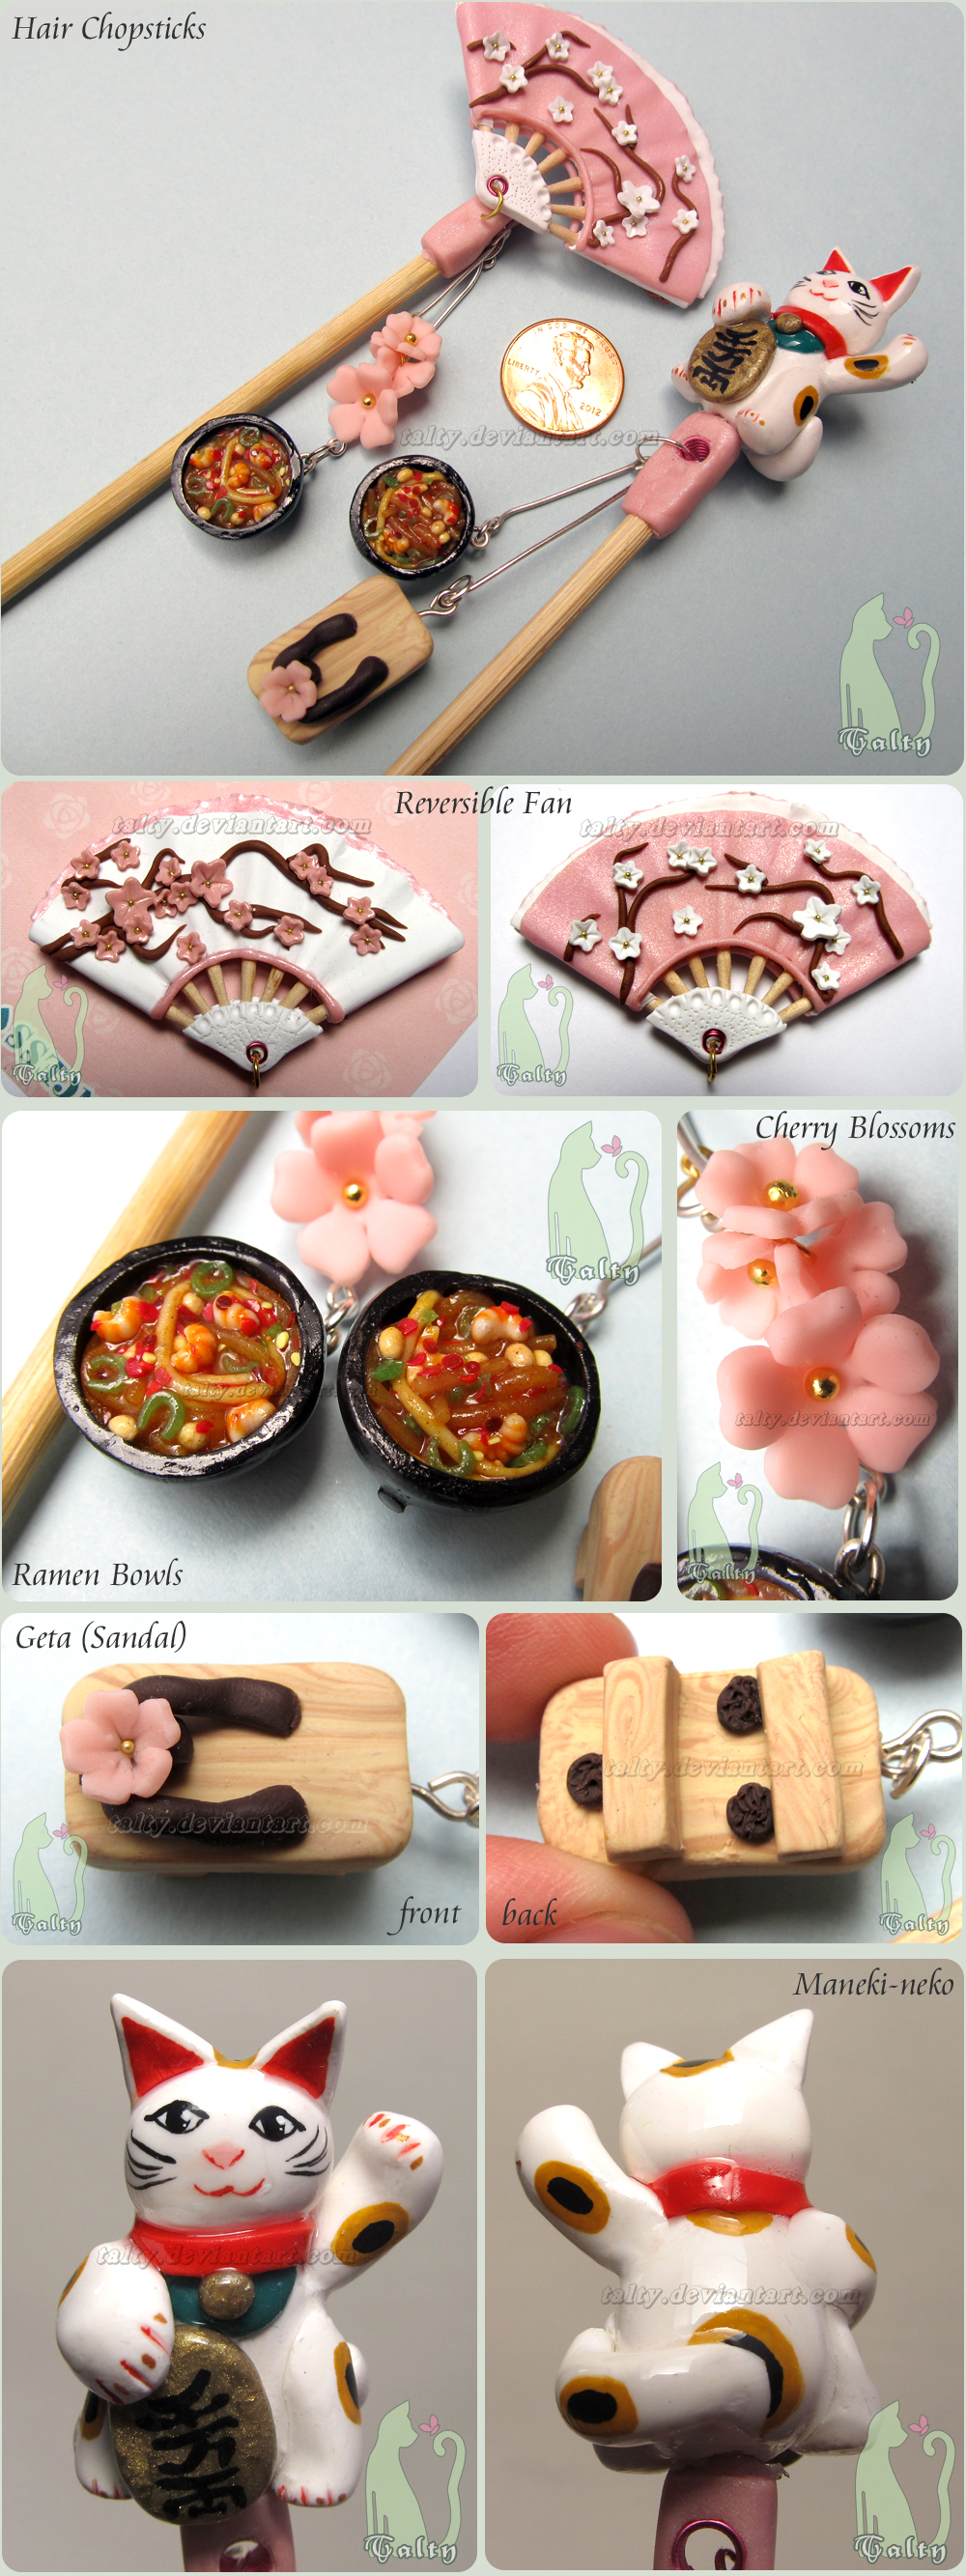 Polymer Clay Chopsticks by Talty